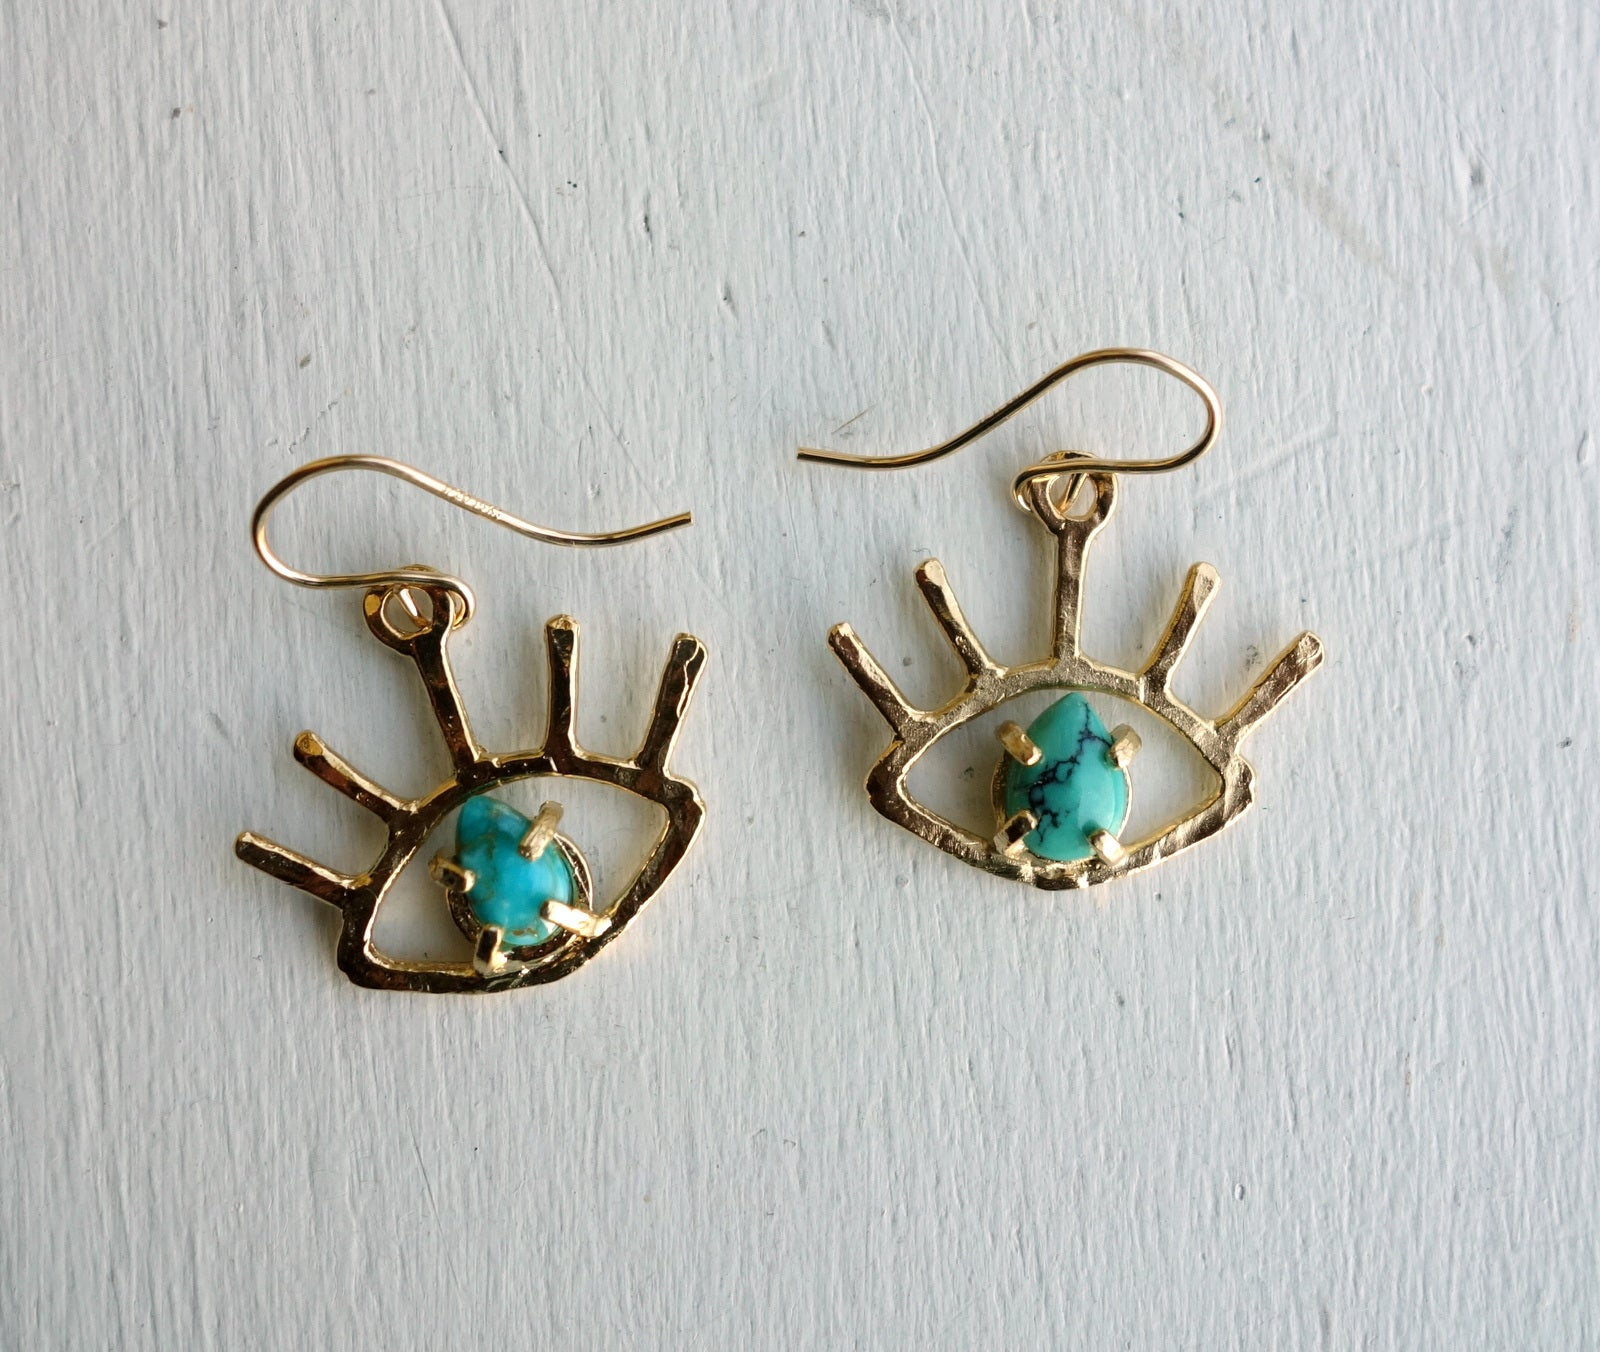 Gold Beholder Eye Earrings with Turquoise